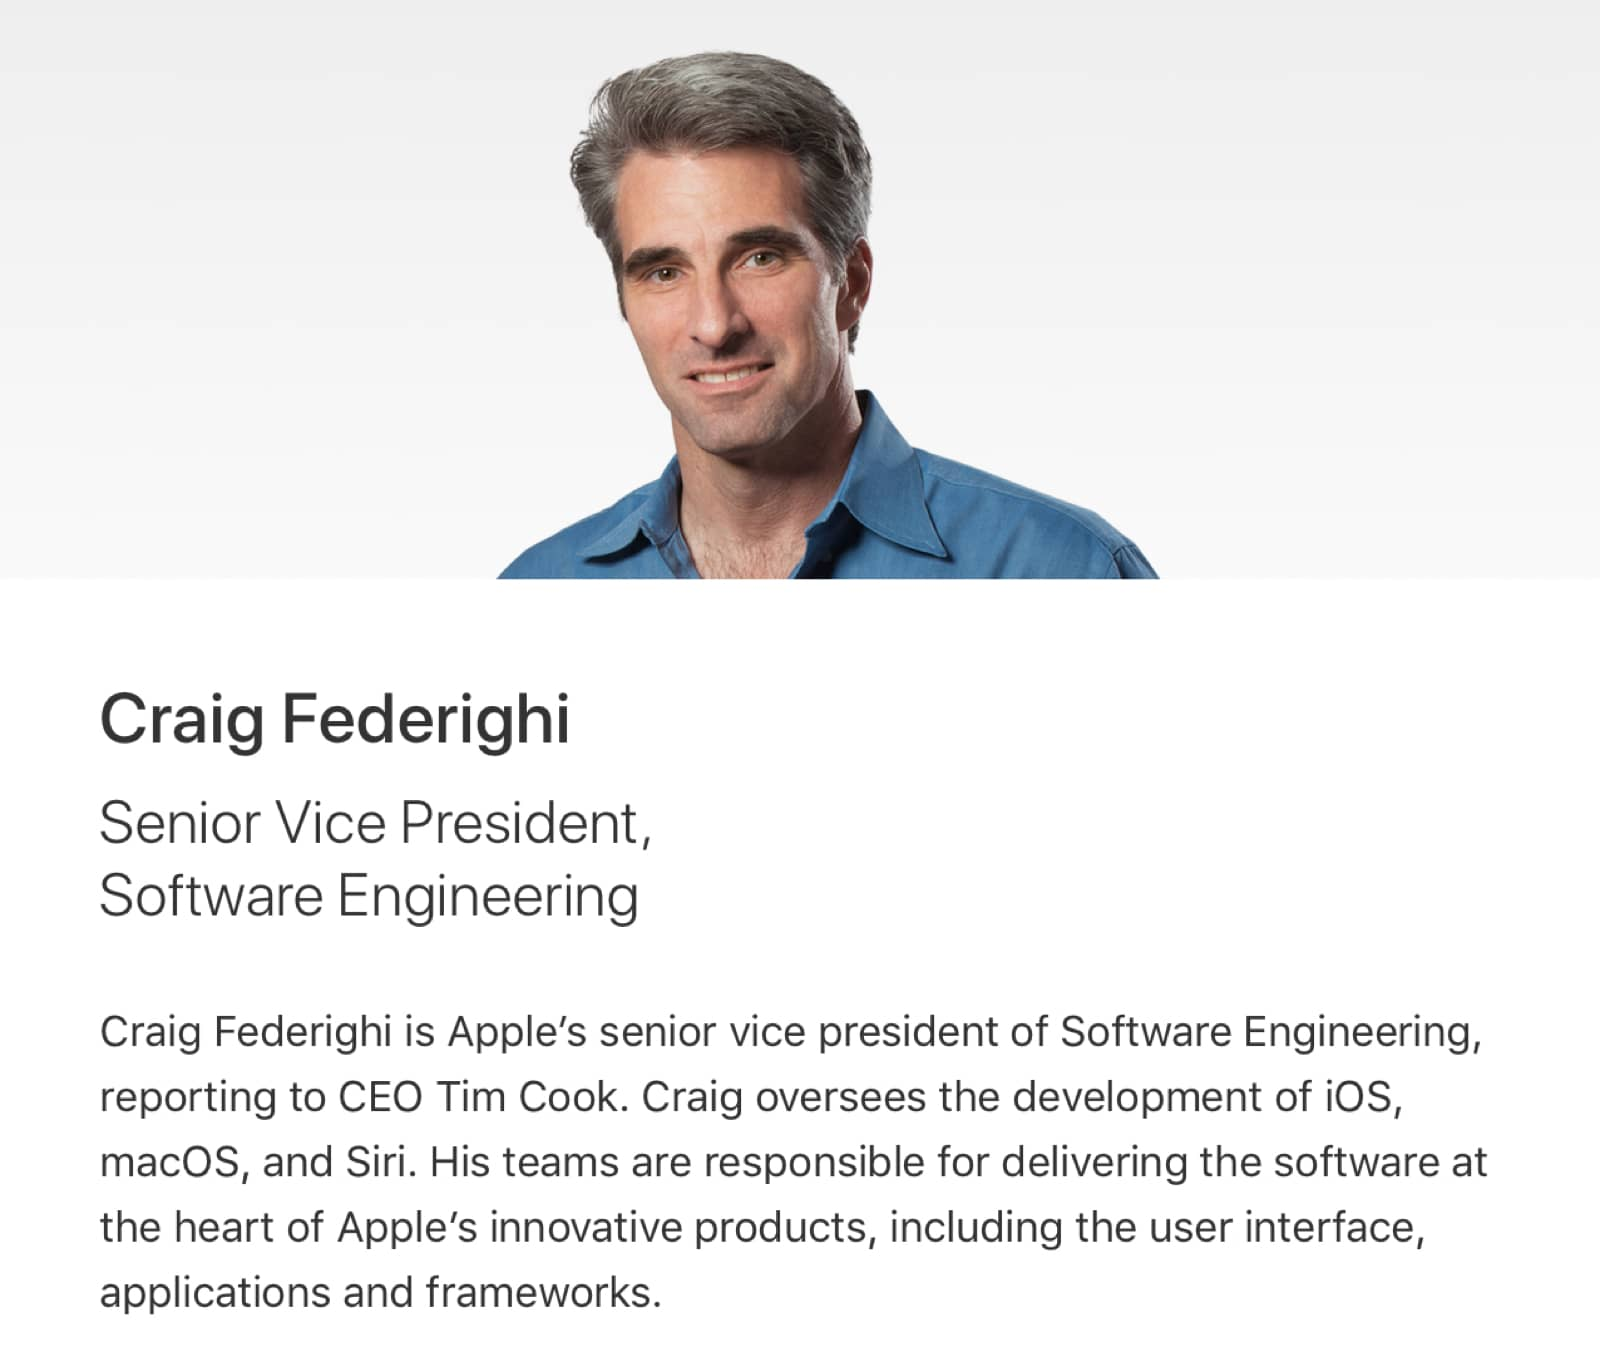 Craig's new bio page says he leads the Siri team.